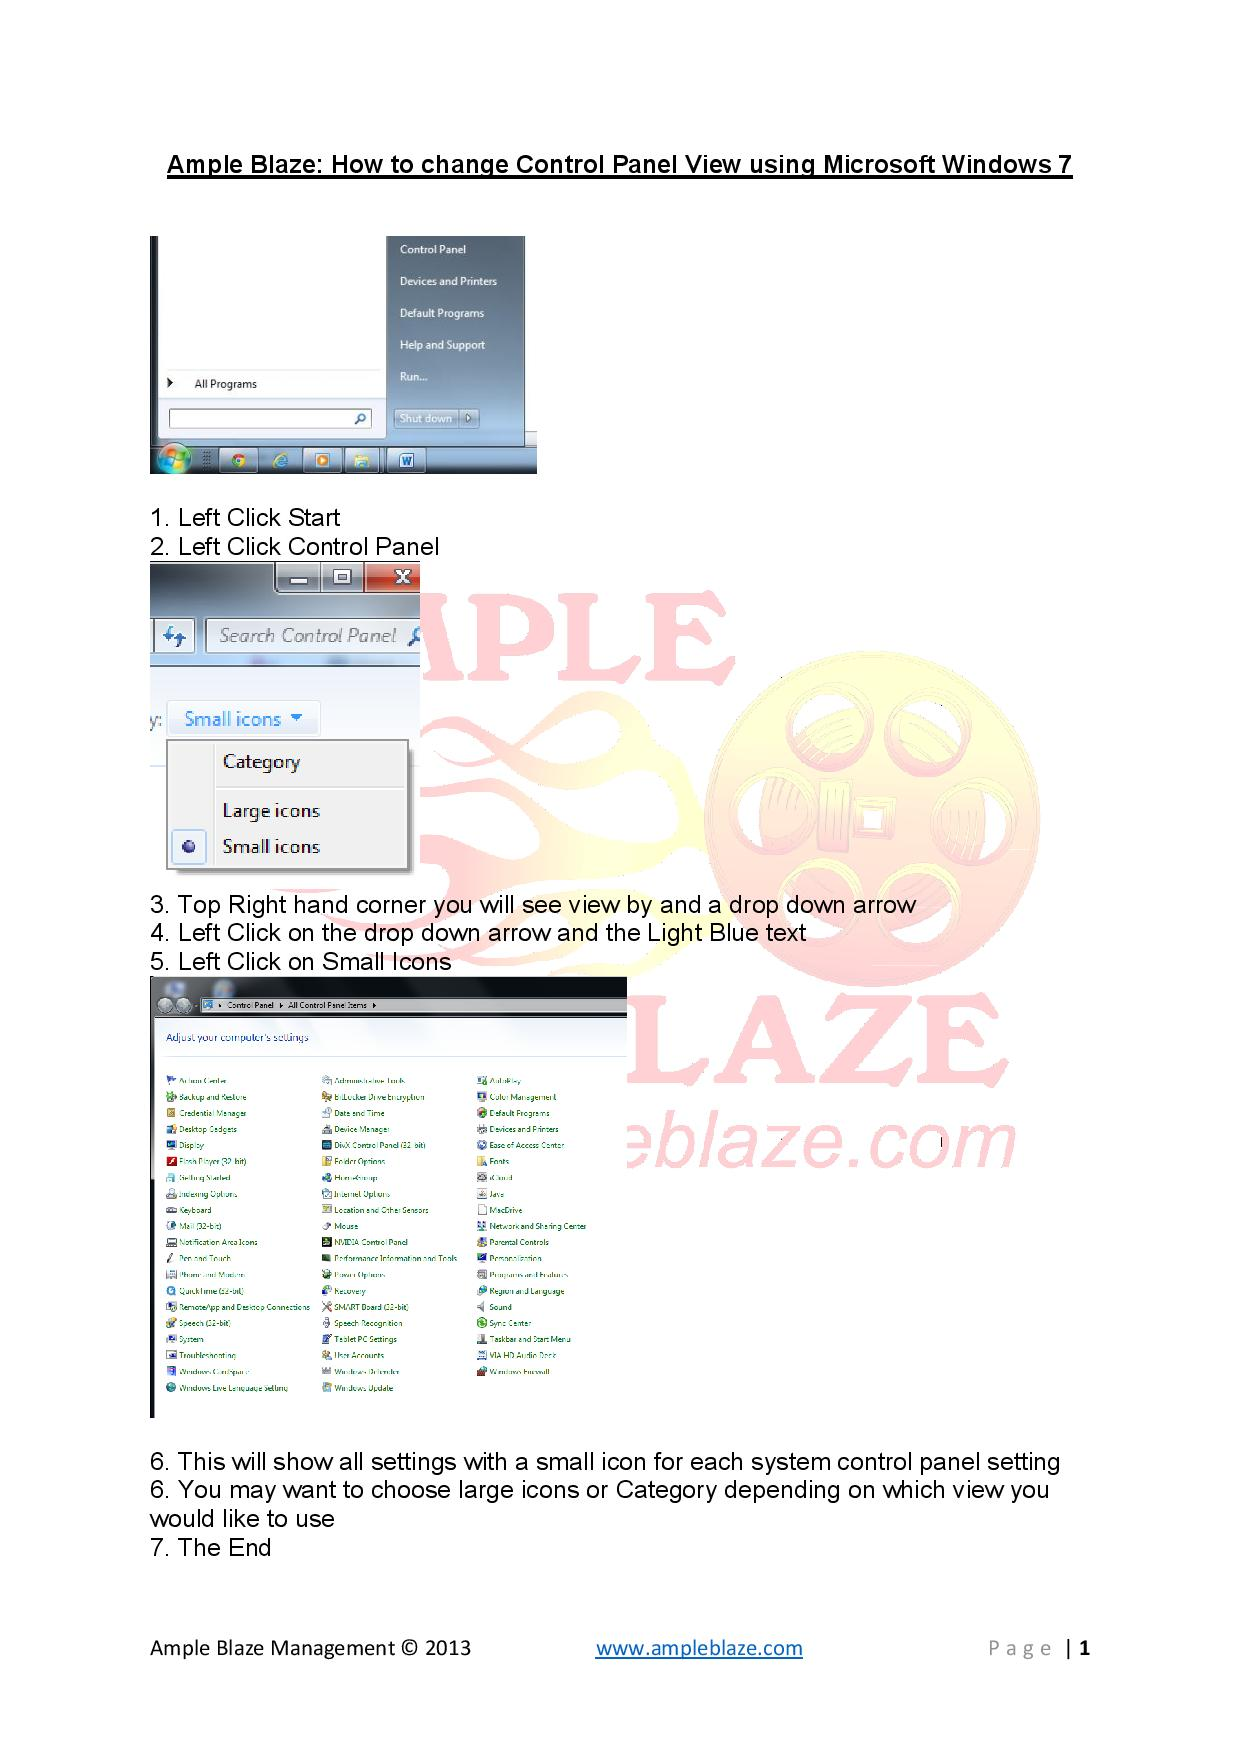 Ample Blaze How to Change Control Panel View-page-001